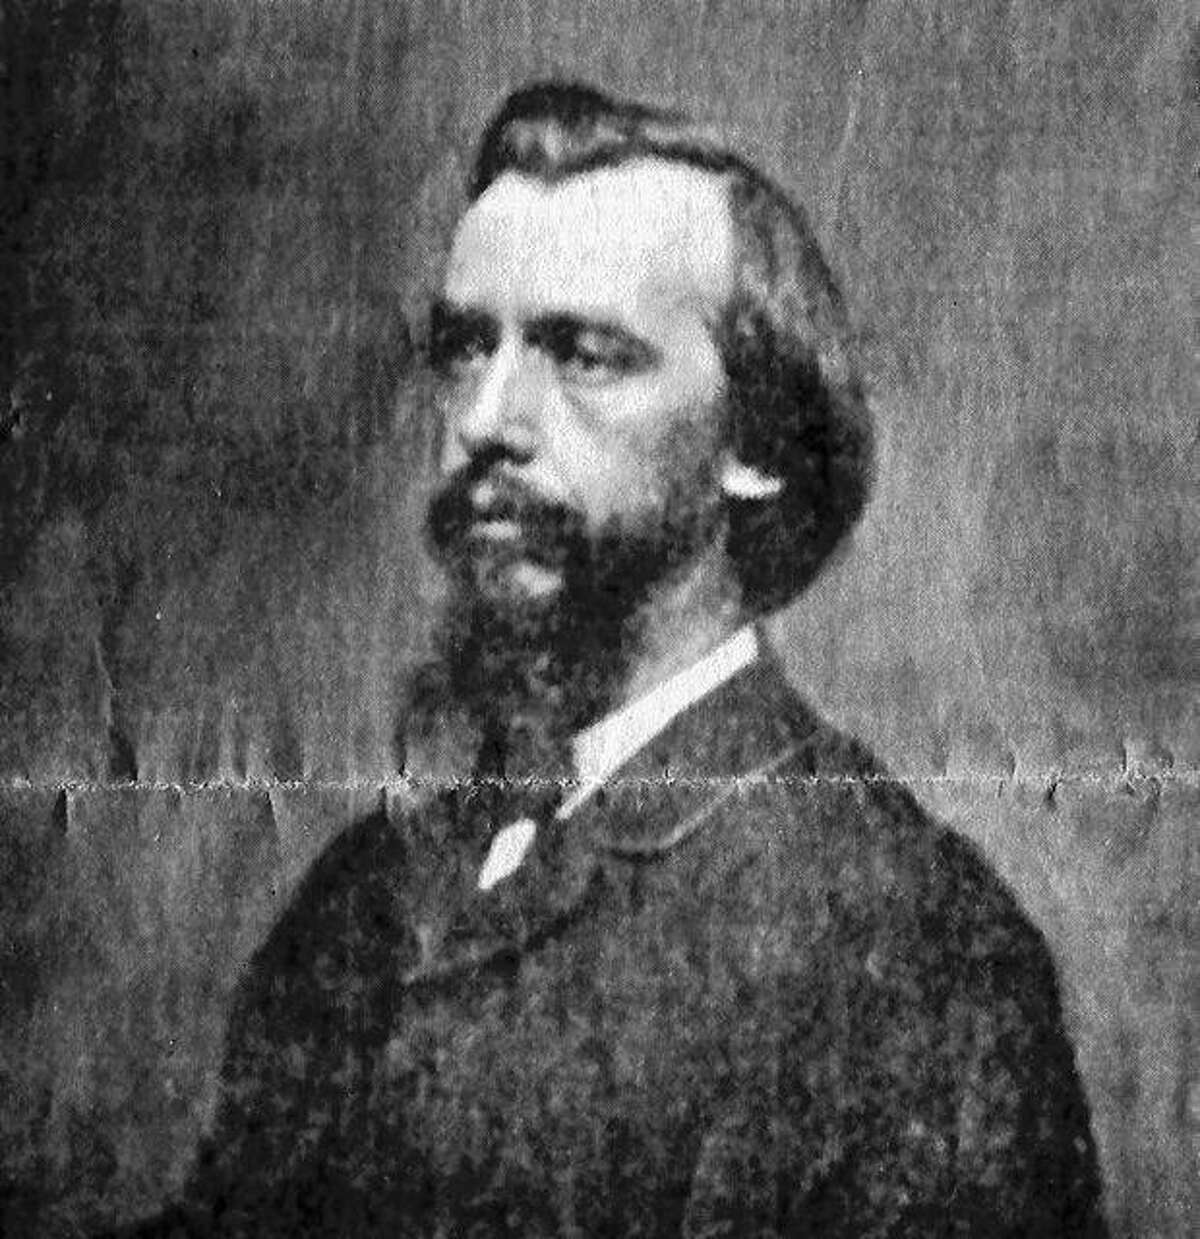 John George Nicolay (1832-1901), a former Pittsfield newspaper owner, served as one of President Abraham Lincoln's private secretaries. This undated photograph of Nicolay was most likely taken during the Civil War.